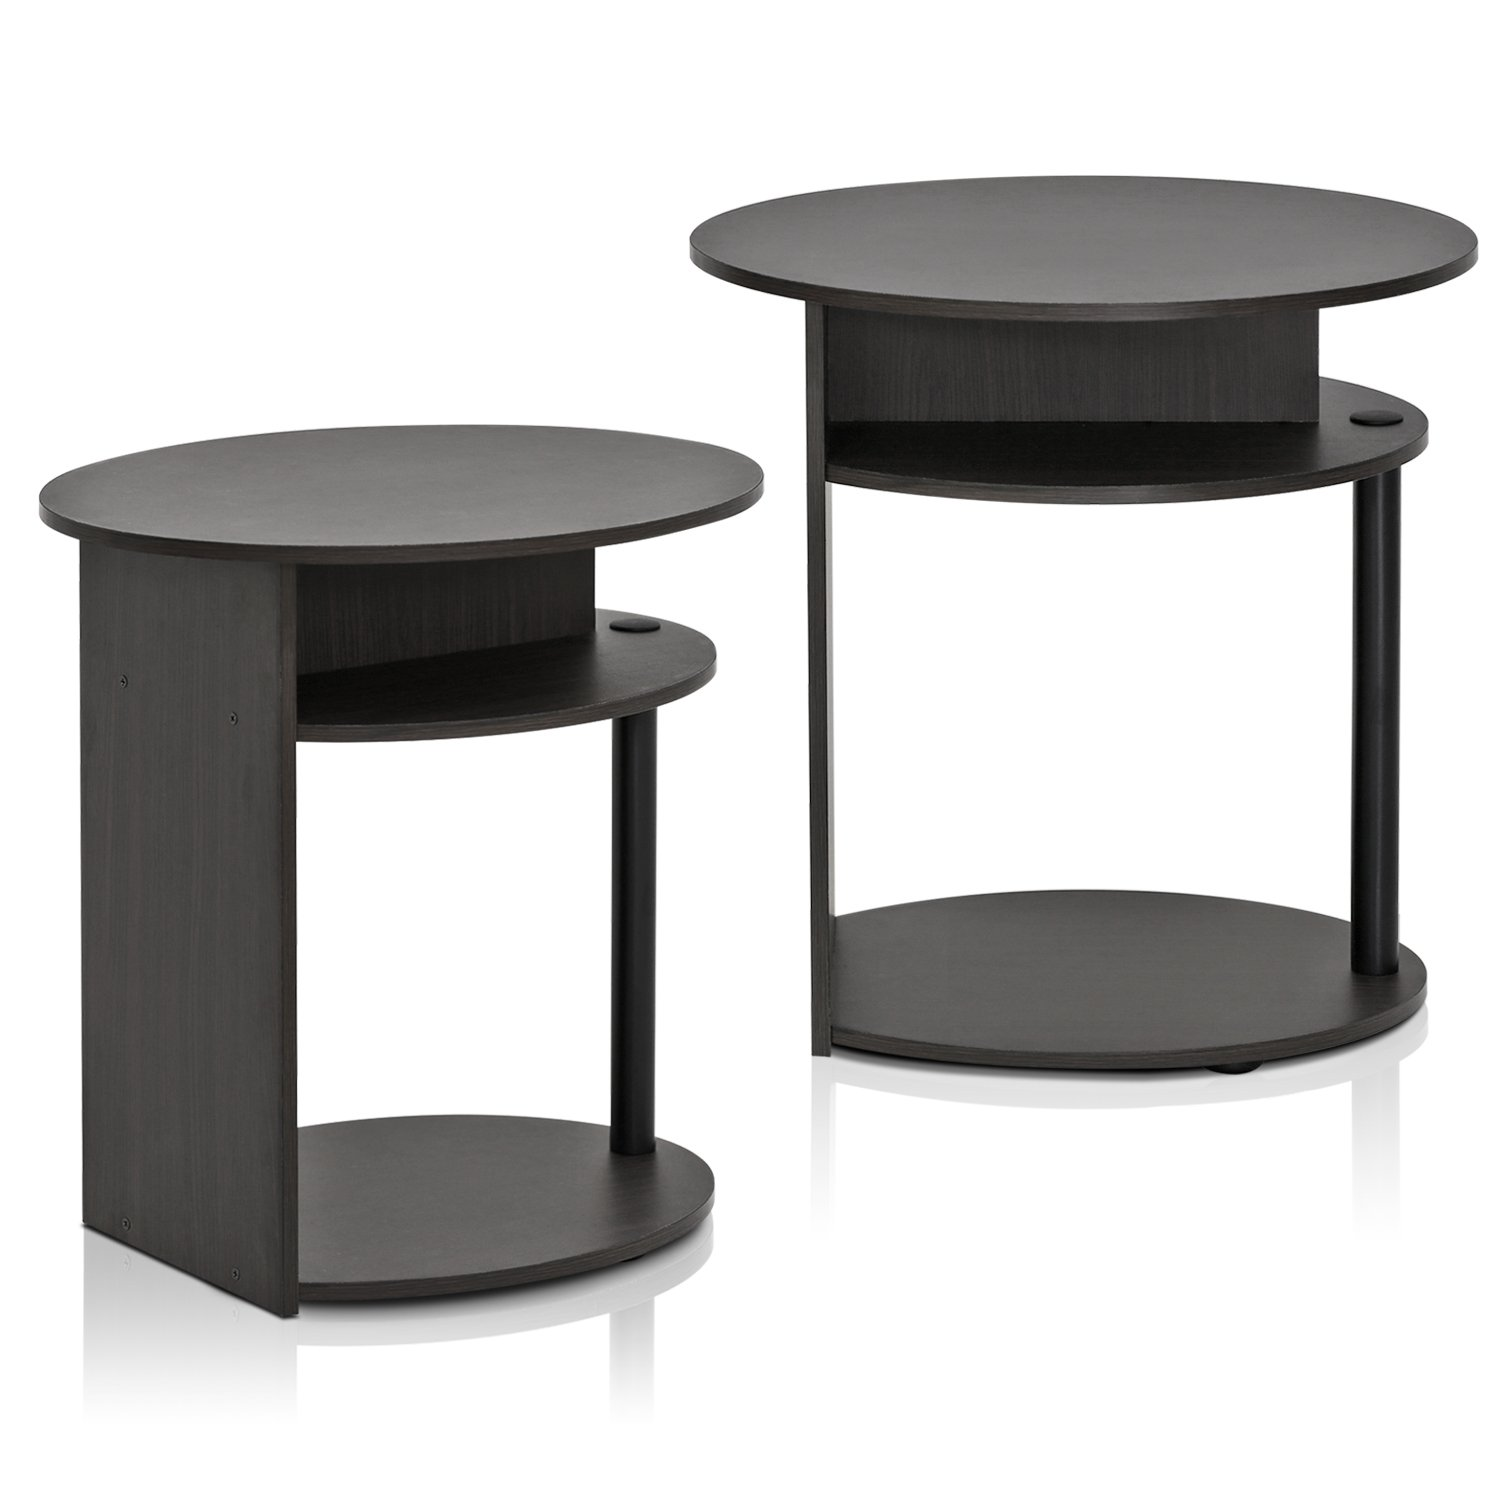 Furinno JAYA Simple Design Oval End Table Set of 2, Walnut,